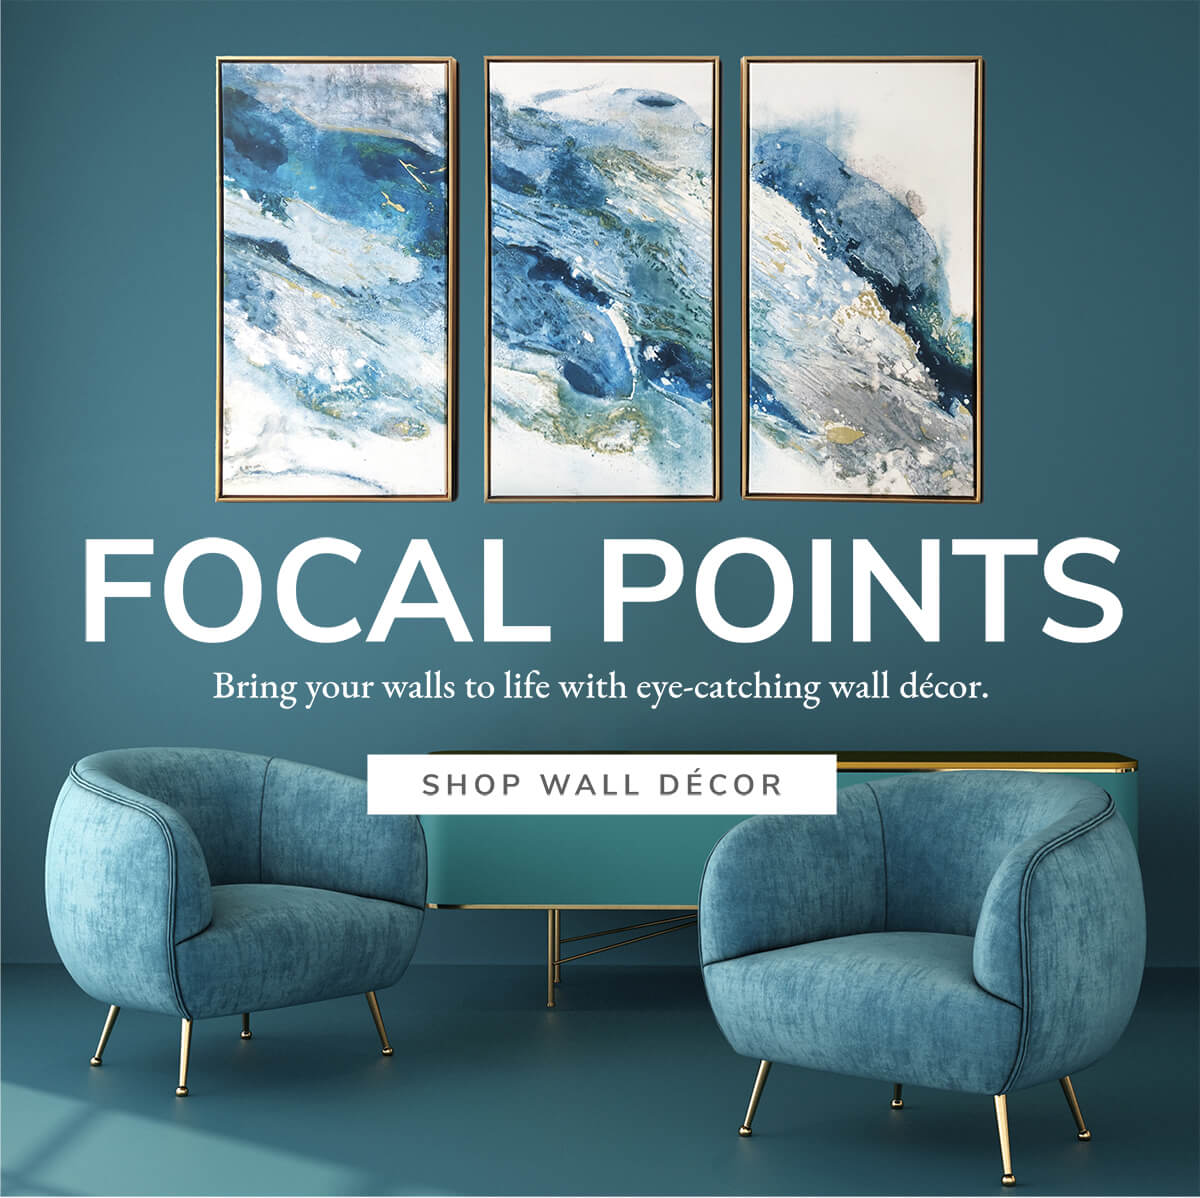 Focal Points. Bring your walls to life with eye-catching wall decor.   SHOP WALL DECOR